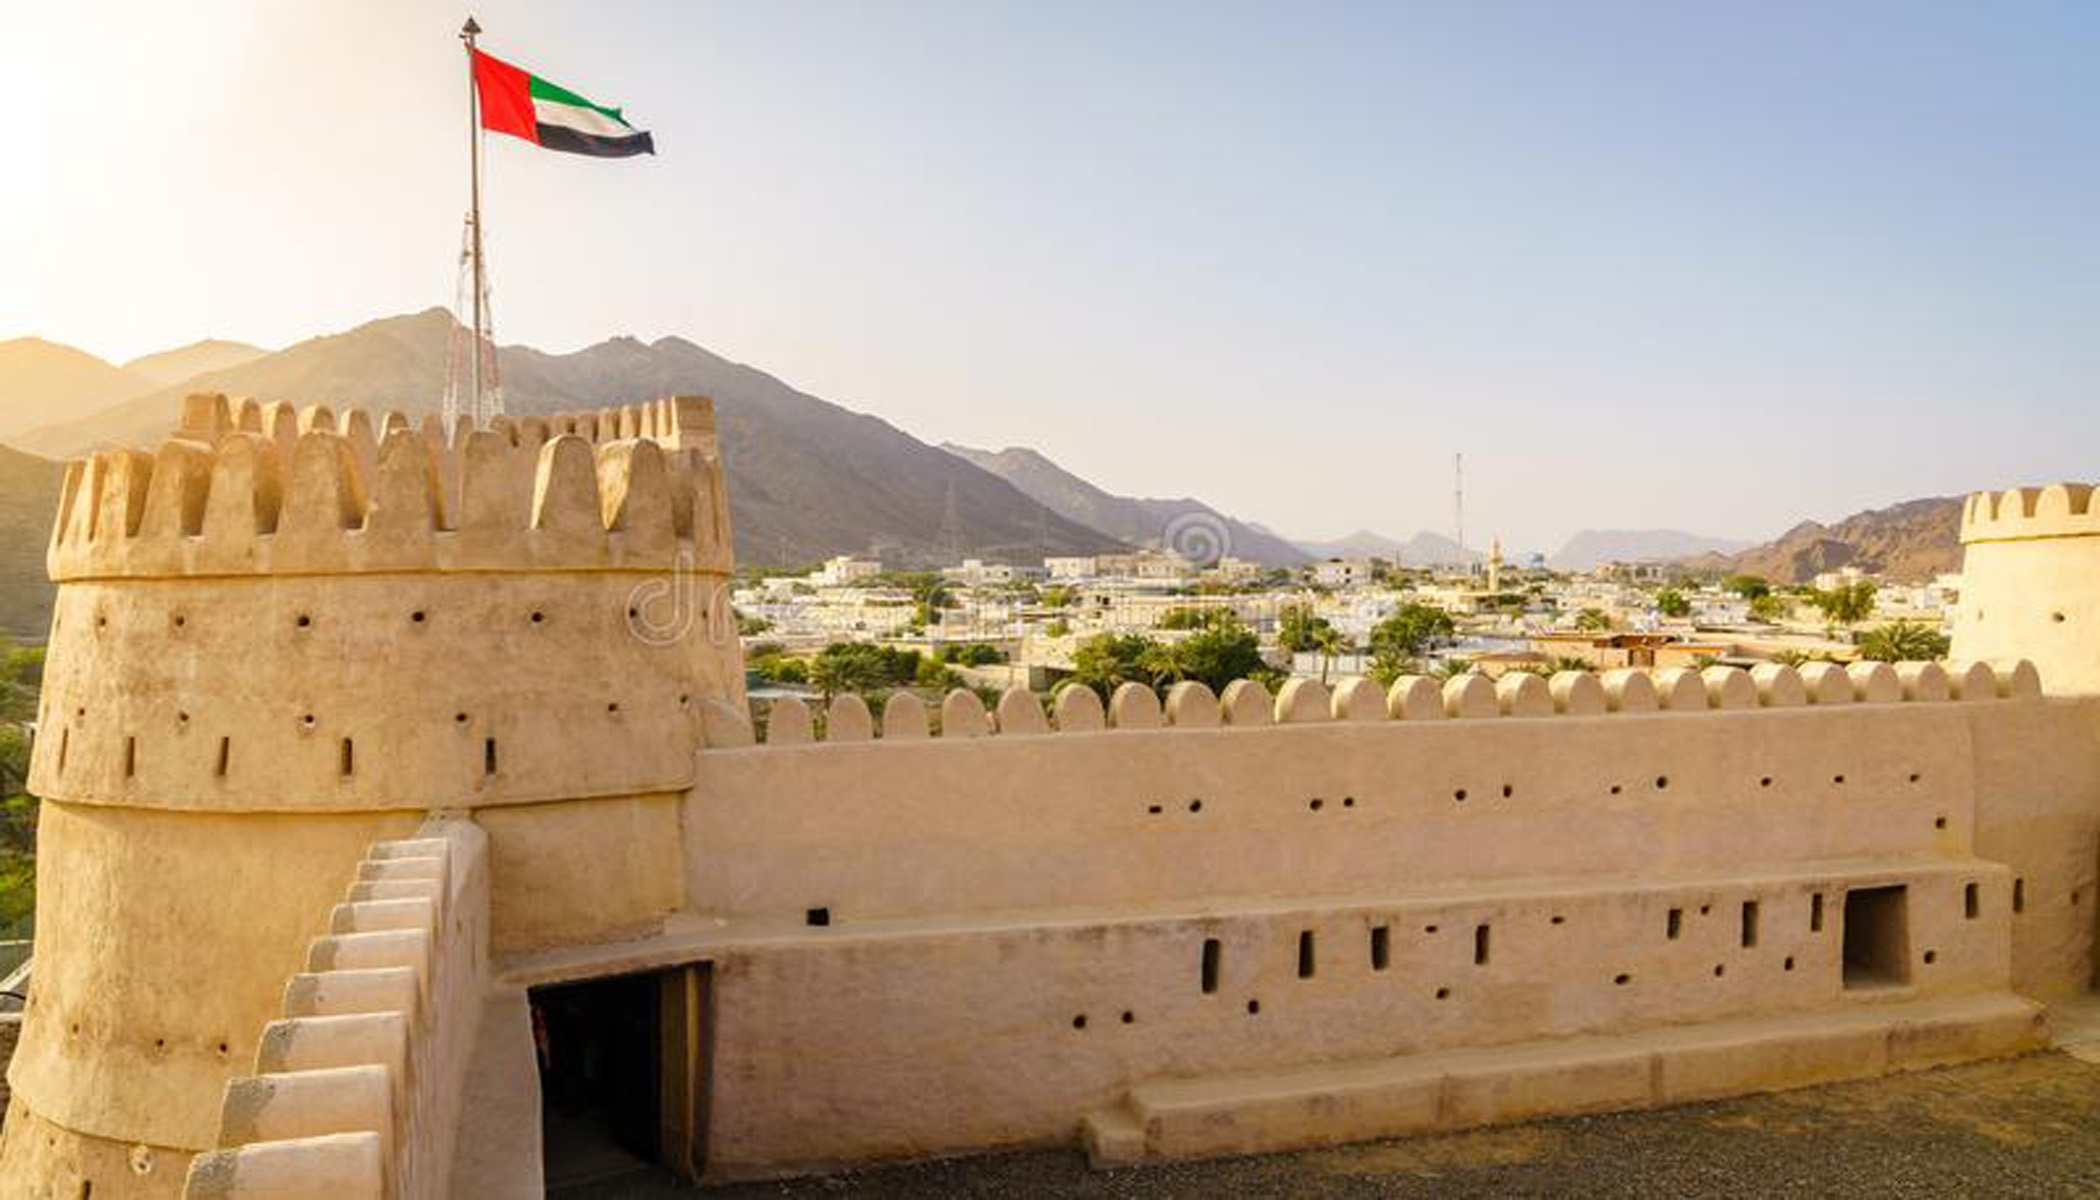 The most favorite place in Fujairah, whenever you visit the UAE, you now have the easiest place to visit in Fujairah.